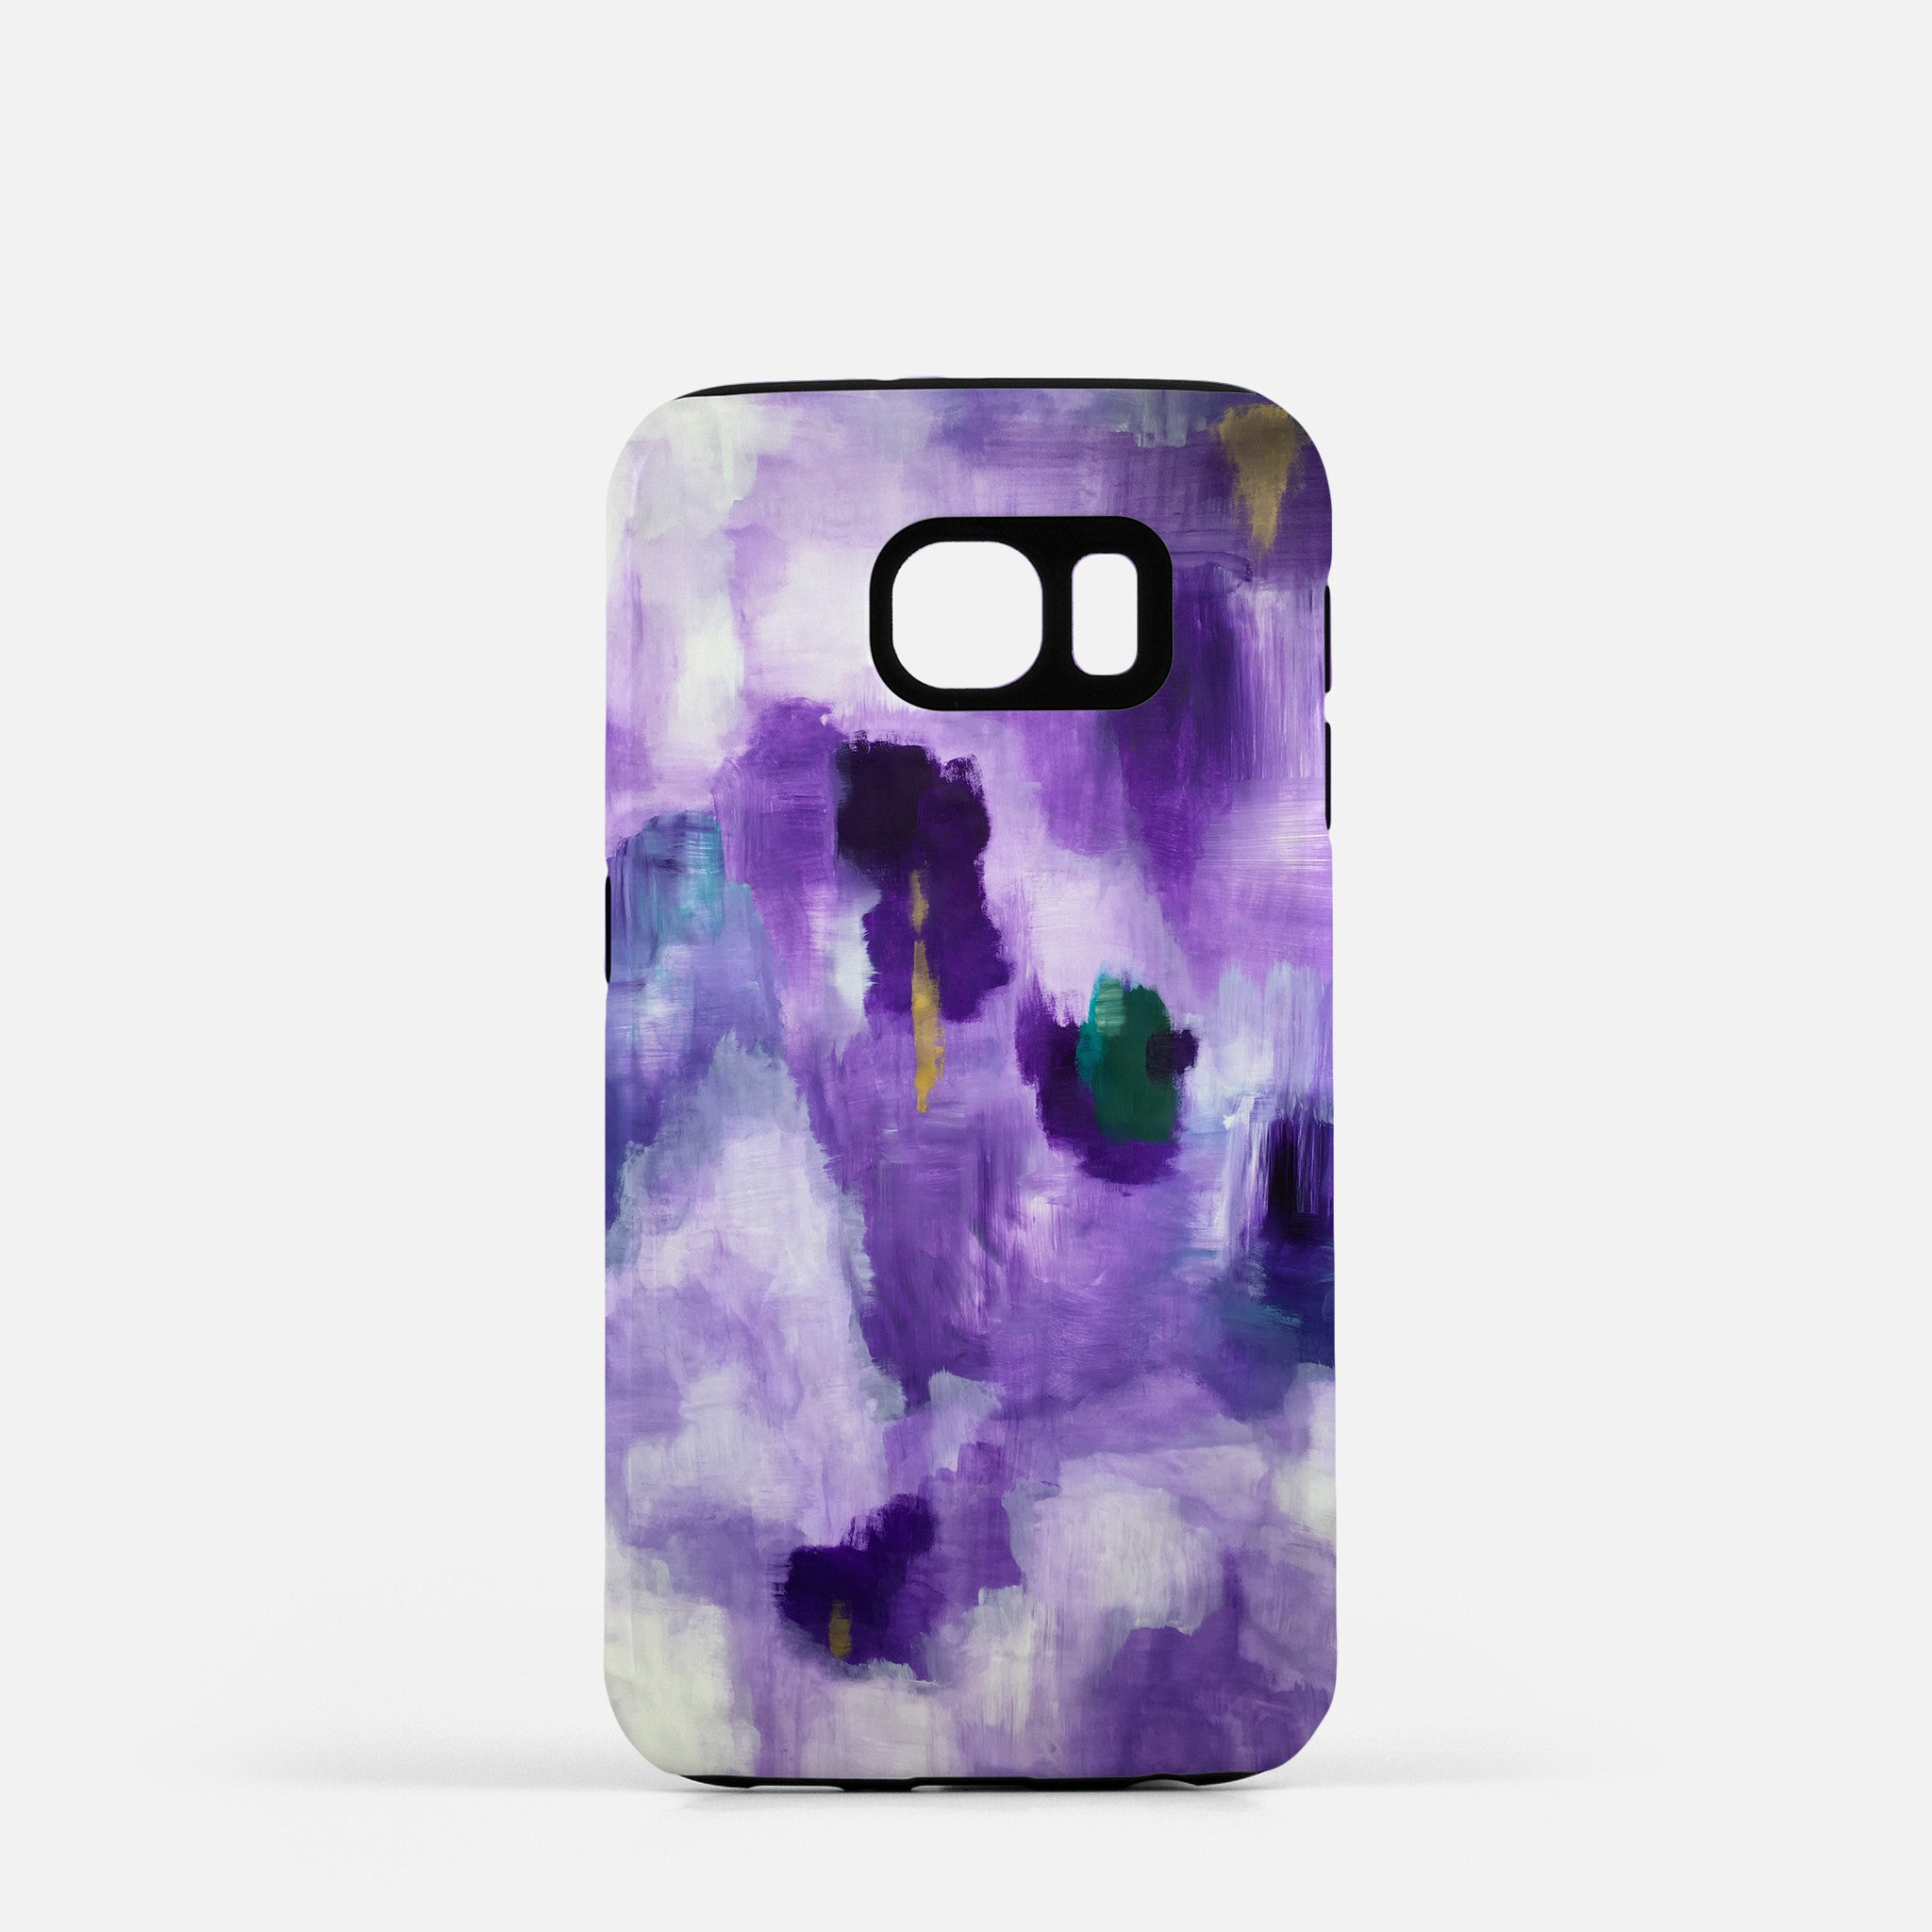 Plum Pop phone cover